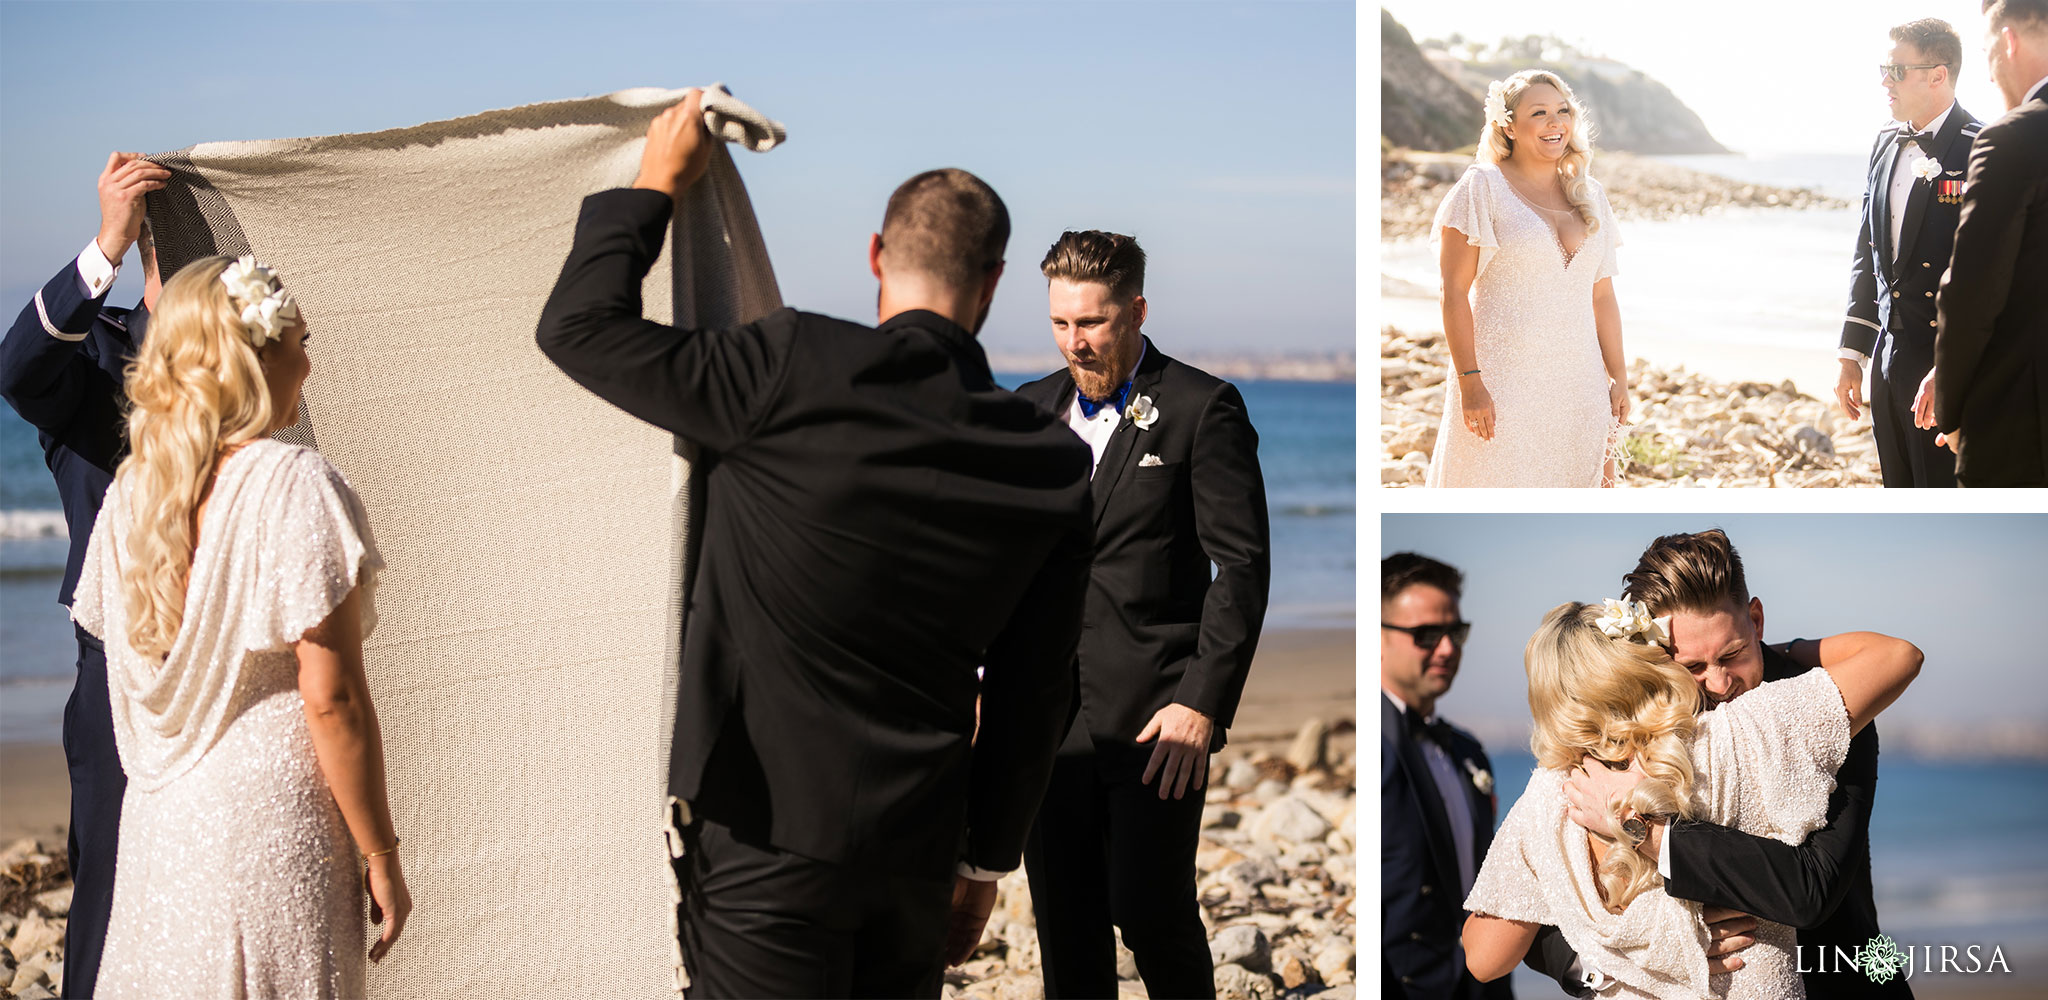 09 redondo beach first look wedding photography